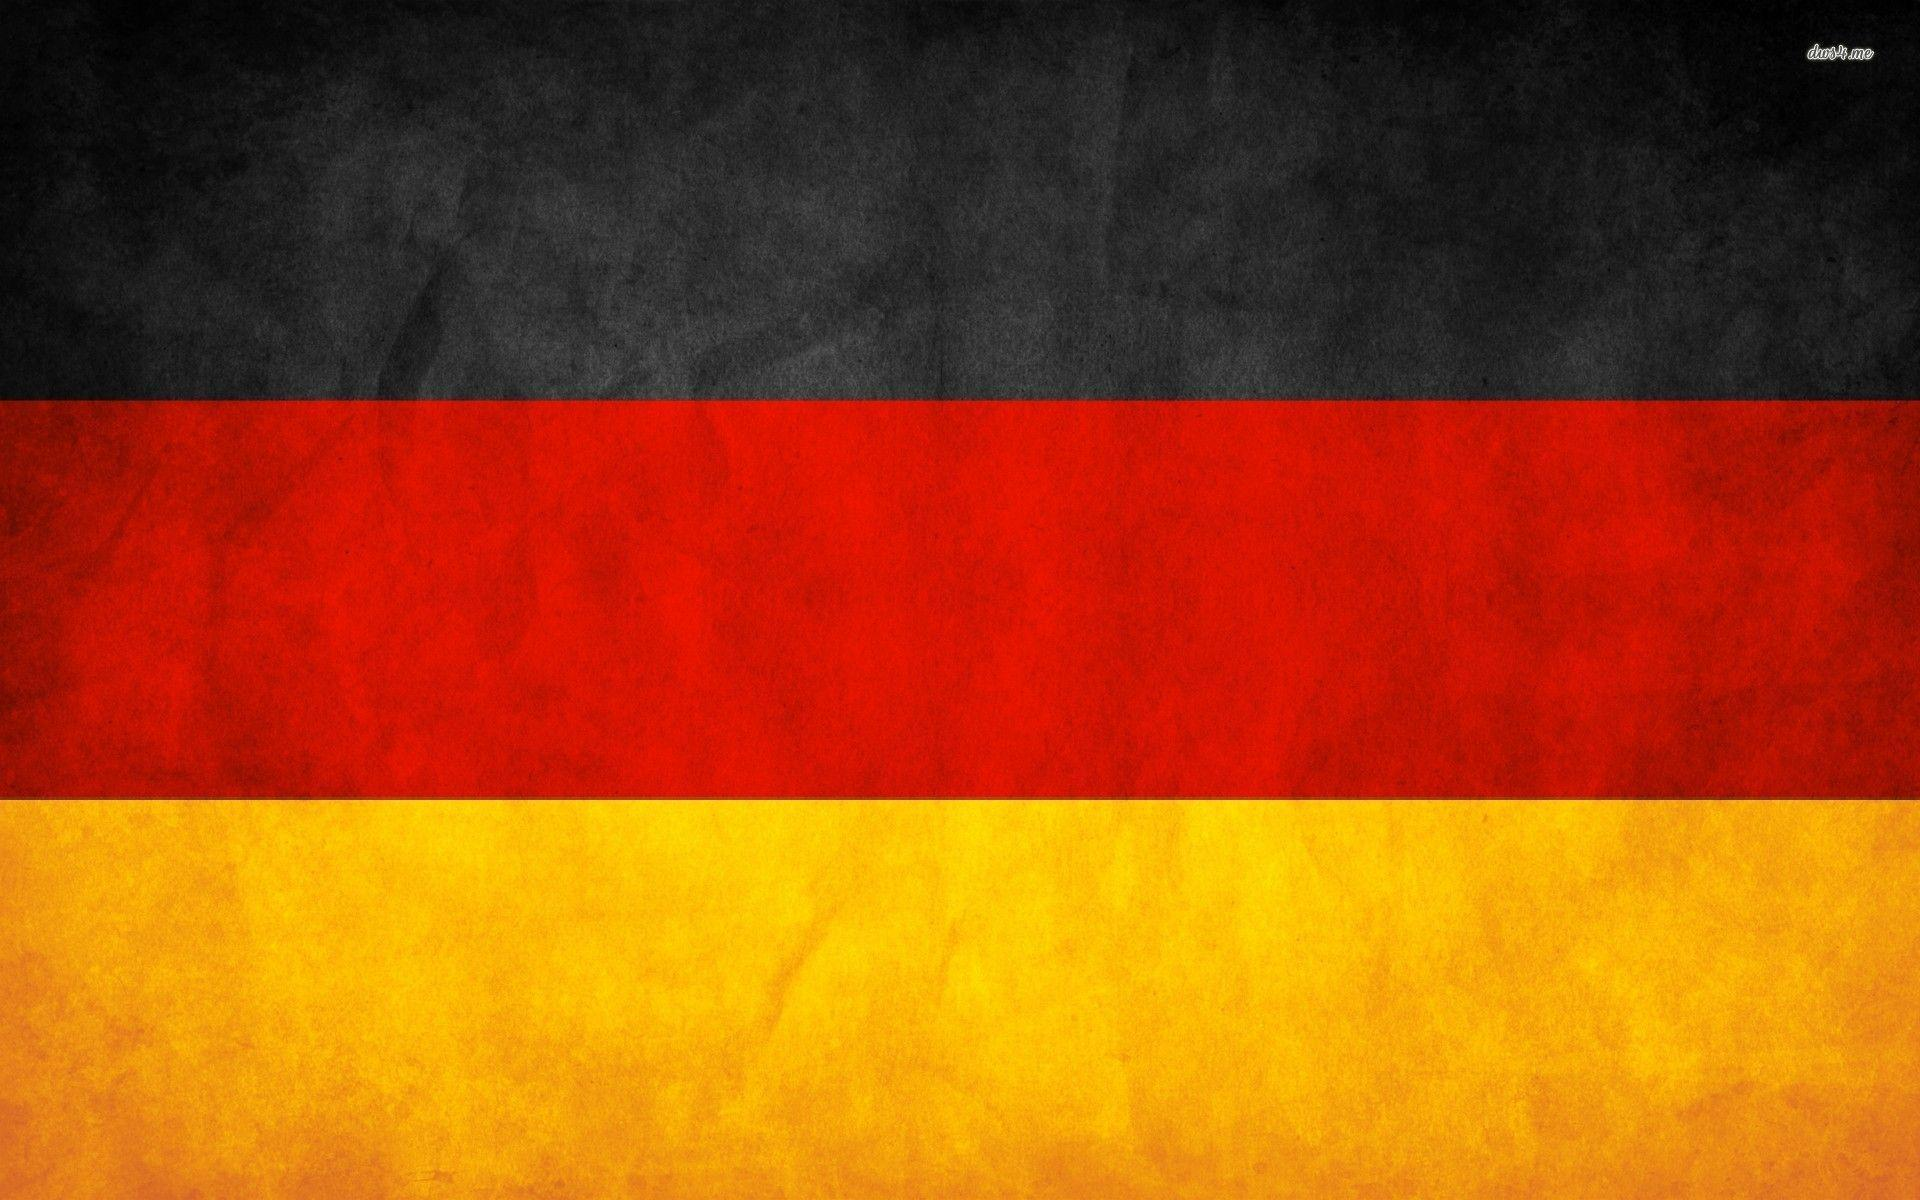 germany flag wallpaper vertical - photo #3